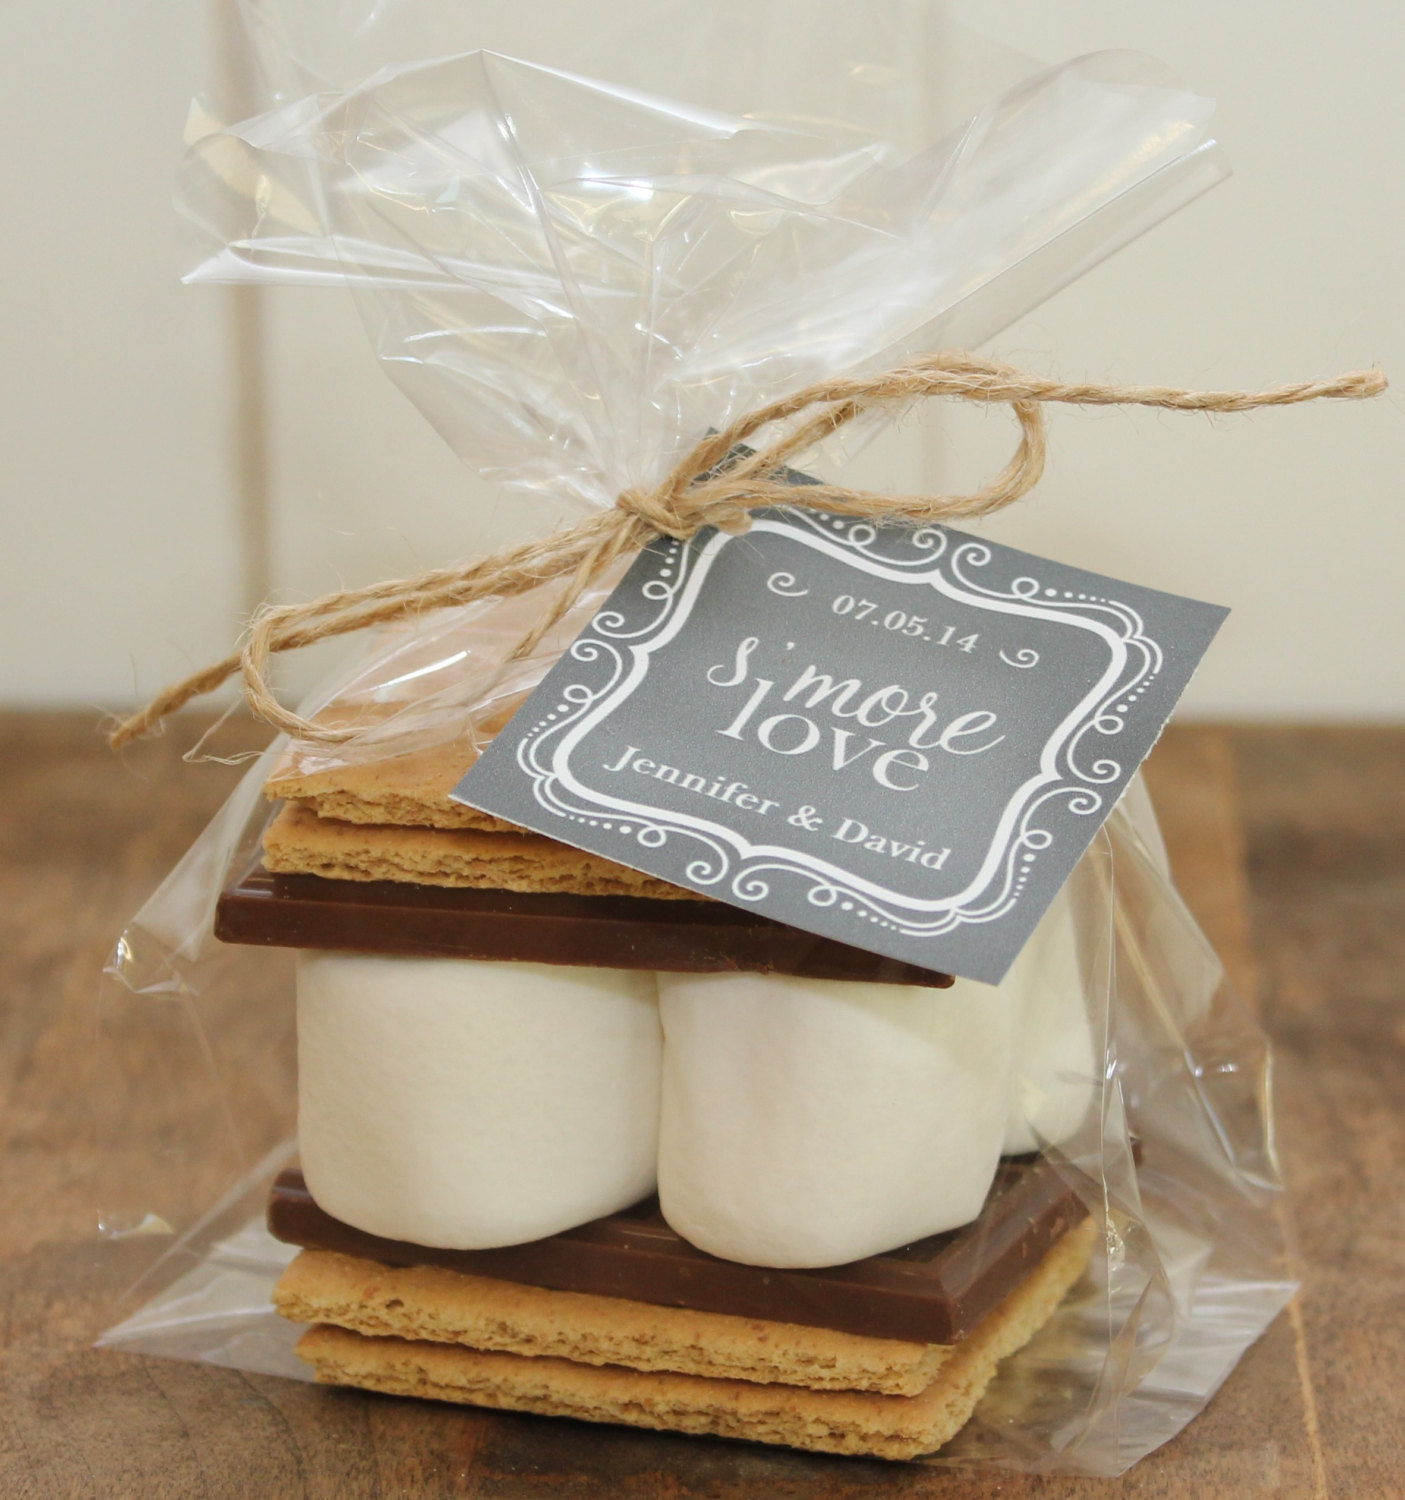 24 Chic Wedding Favors For Your Guests  Modwedding. Ideas For Wedding Dessert Table. Chinese Wedding Invitation Template. Your Wedding Dress Style Quiz. Wedding Party Ceremony Entrance Music. Wedding Invitation Cost Breakdown. Small Wedding Venues Guernsey. Wedding Invitations Yelp. Wedding Clothes Ireland